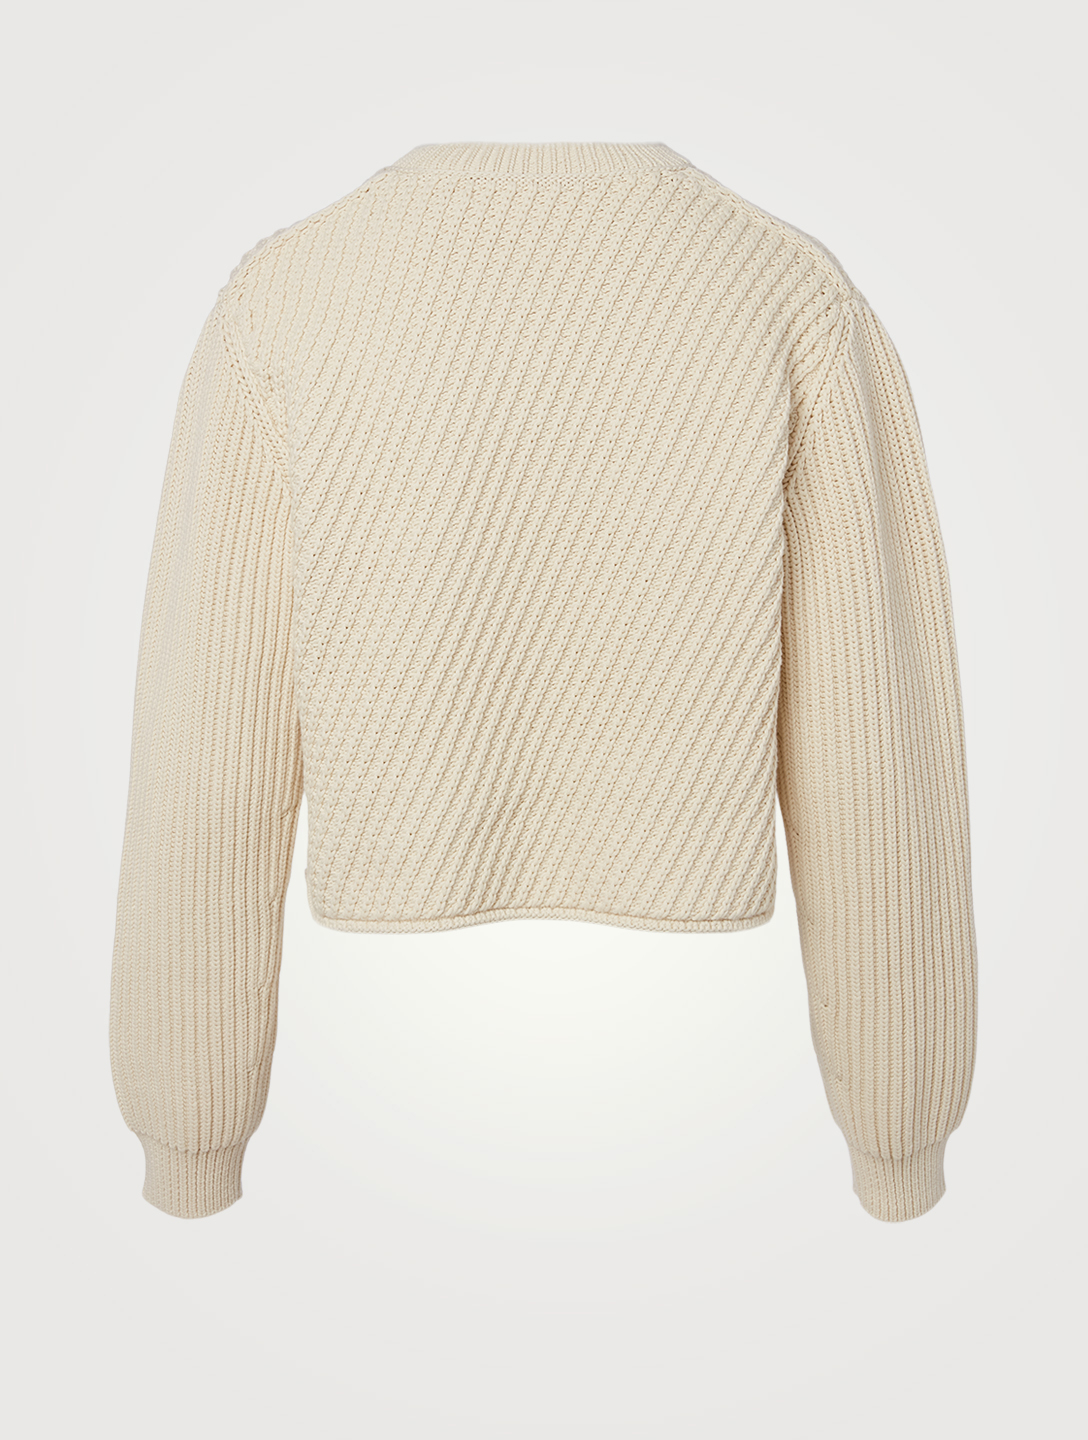 ACNE STUDIOS Chunky Cropped Sweater Women's Beige